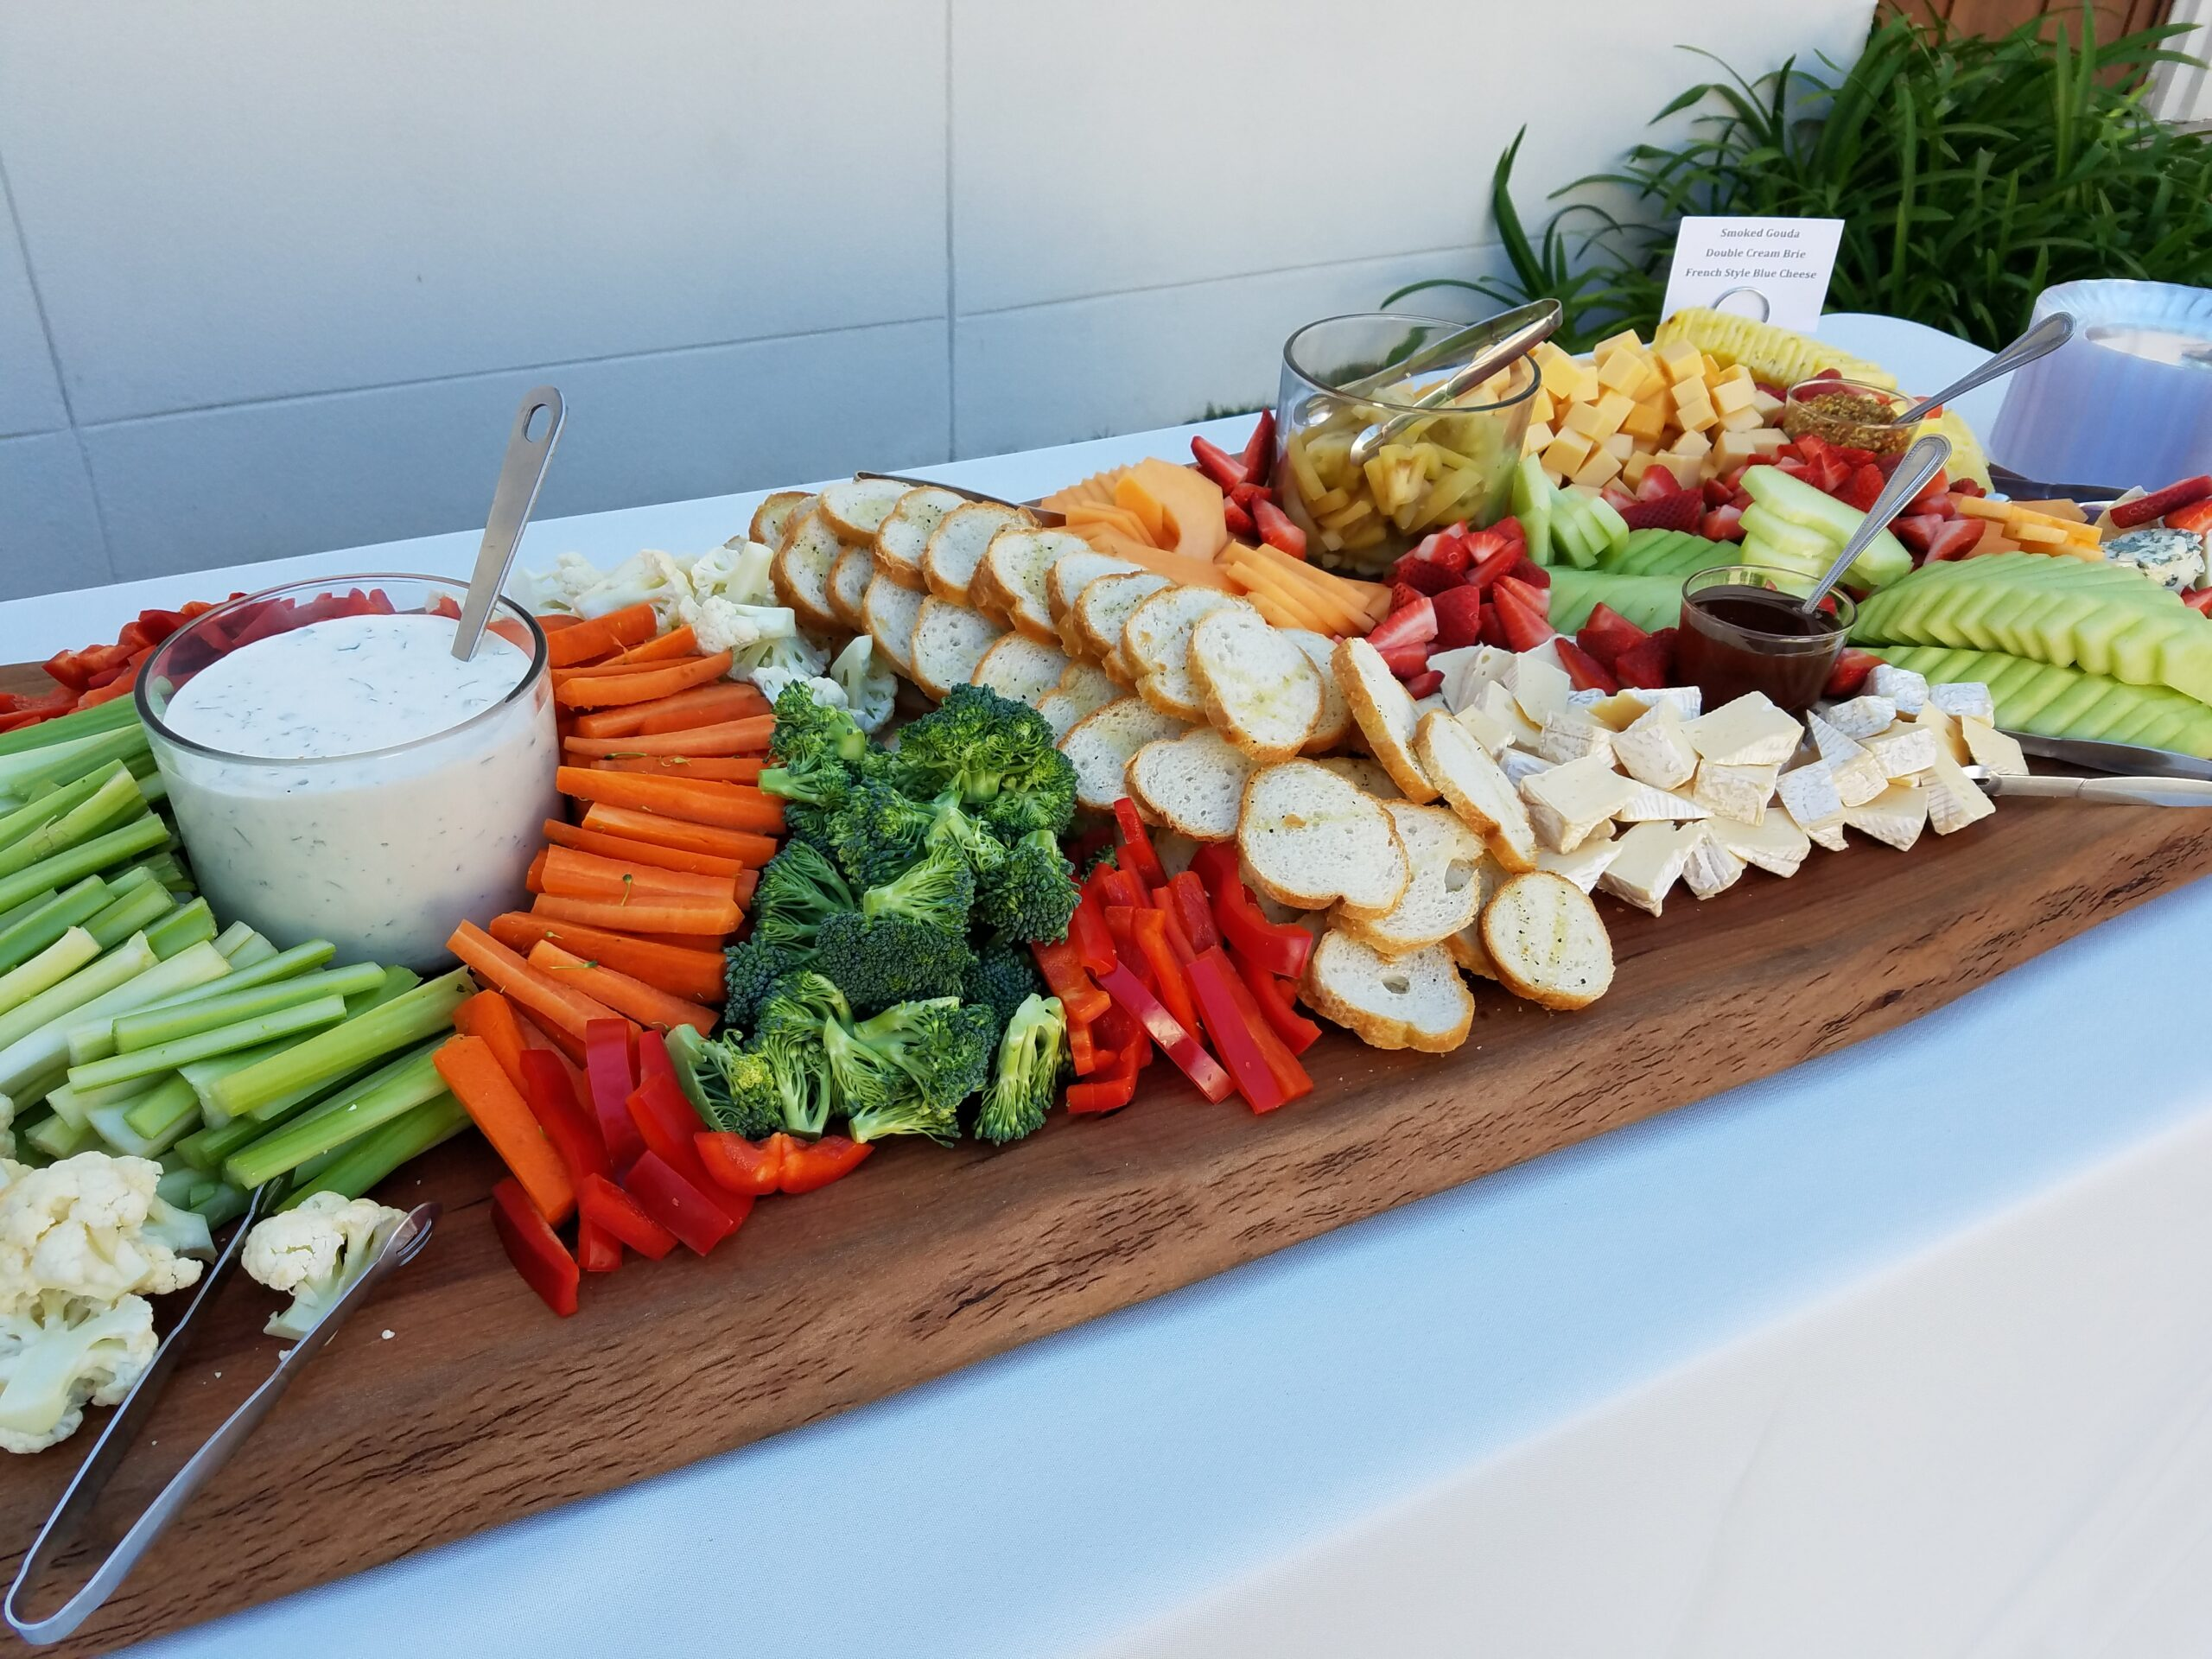 Fresh and vibrant fruit and crudites grazing table board.